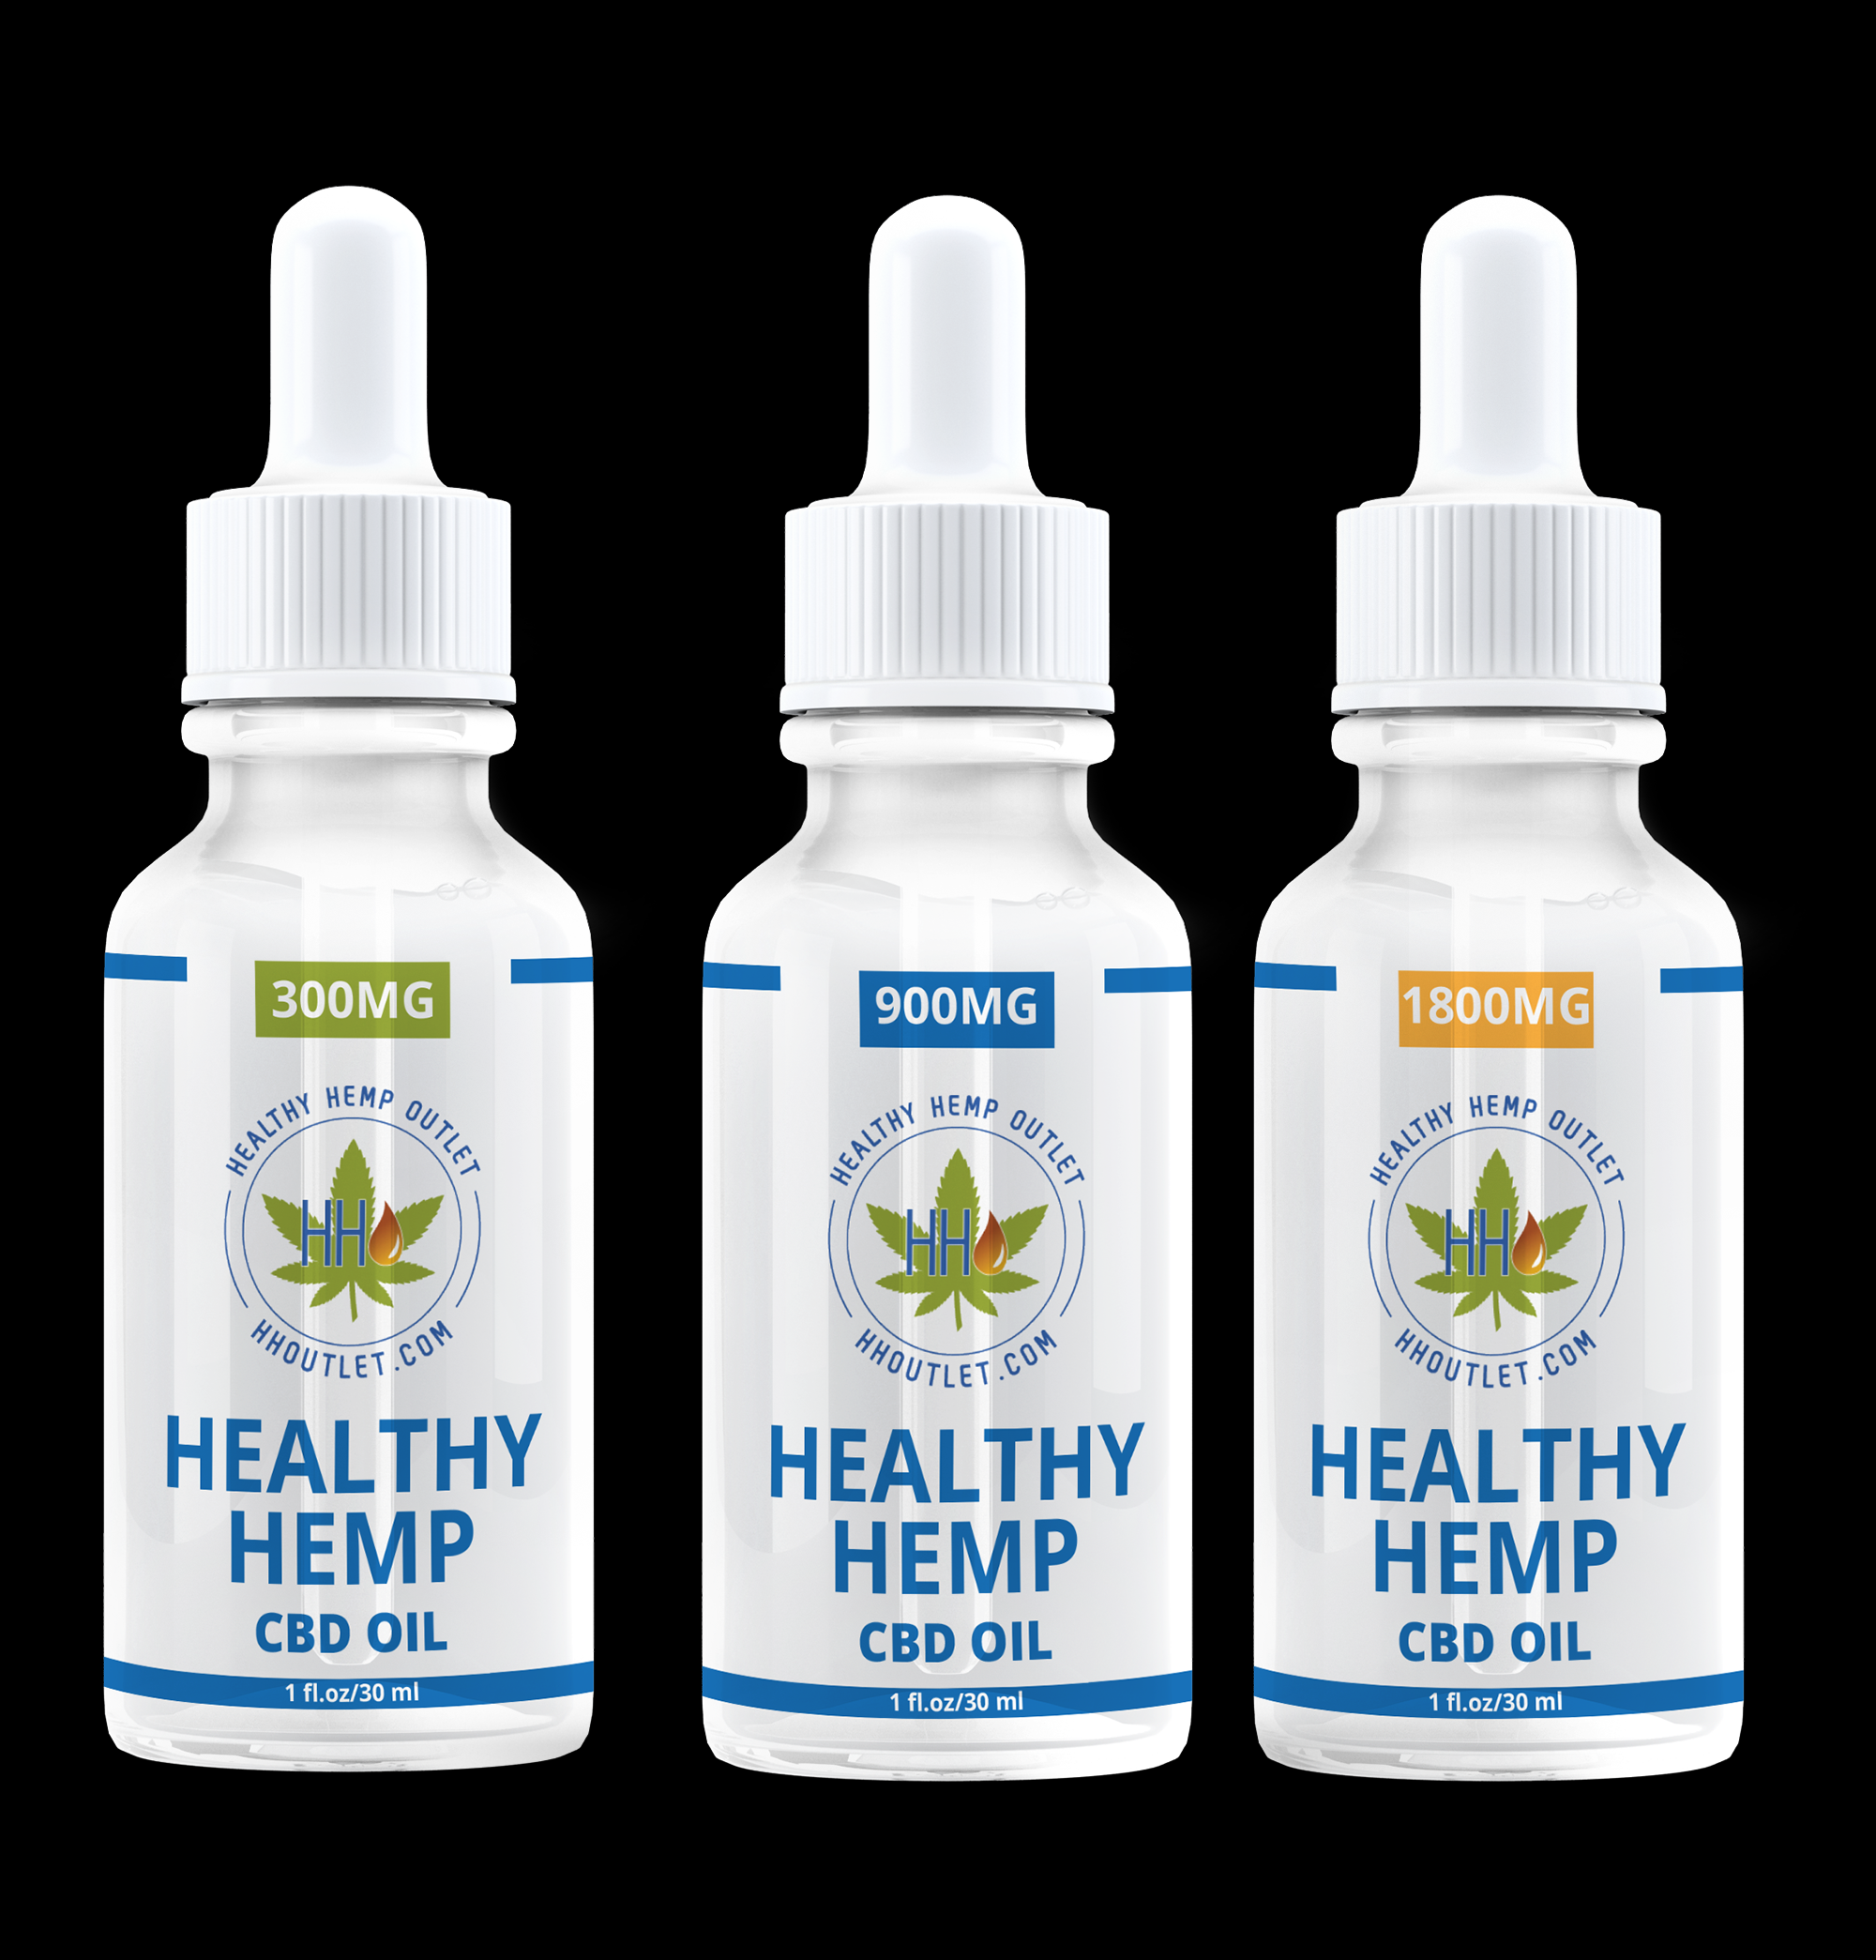 Health and Wellness Tincture Bottle Label Contest